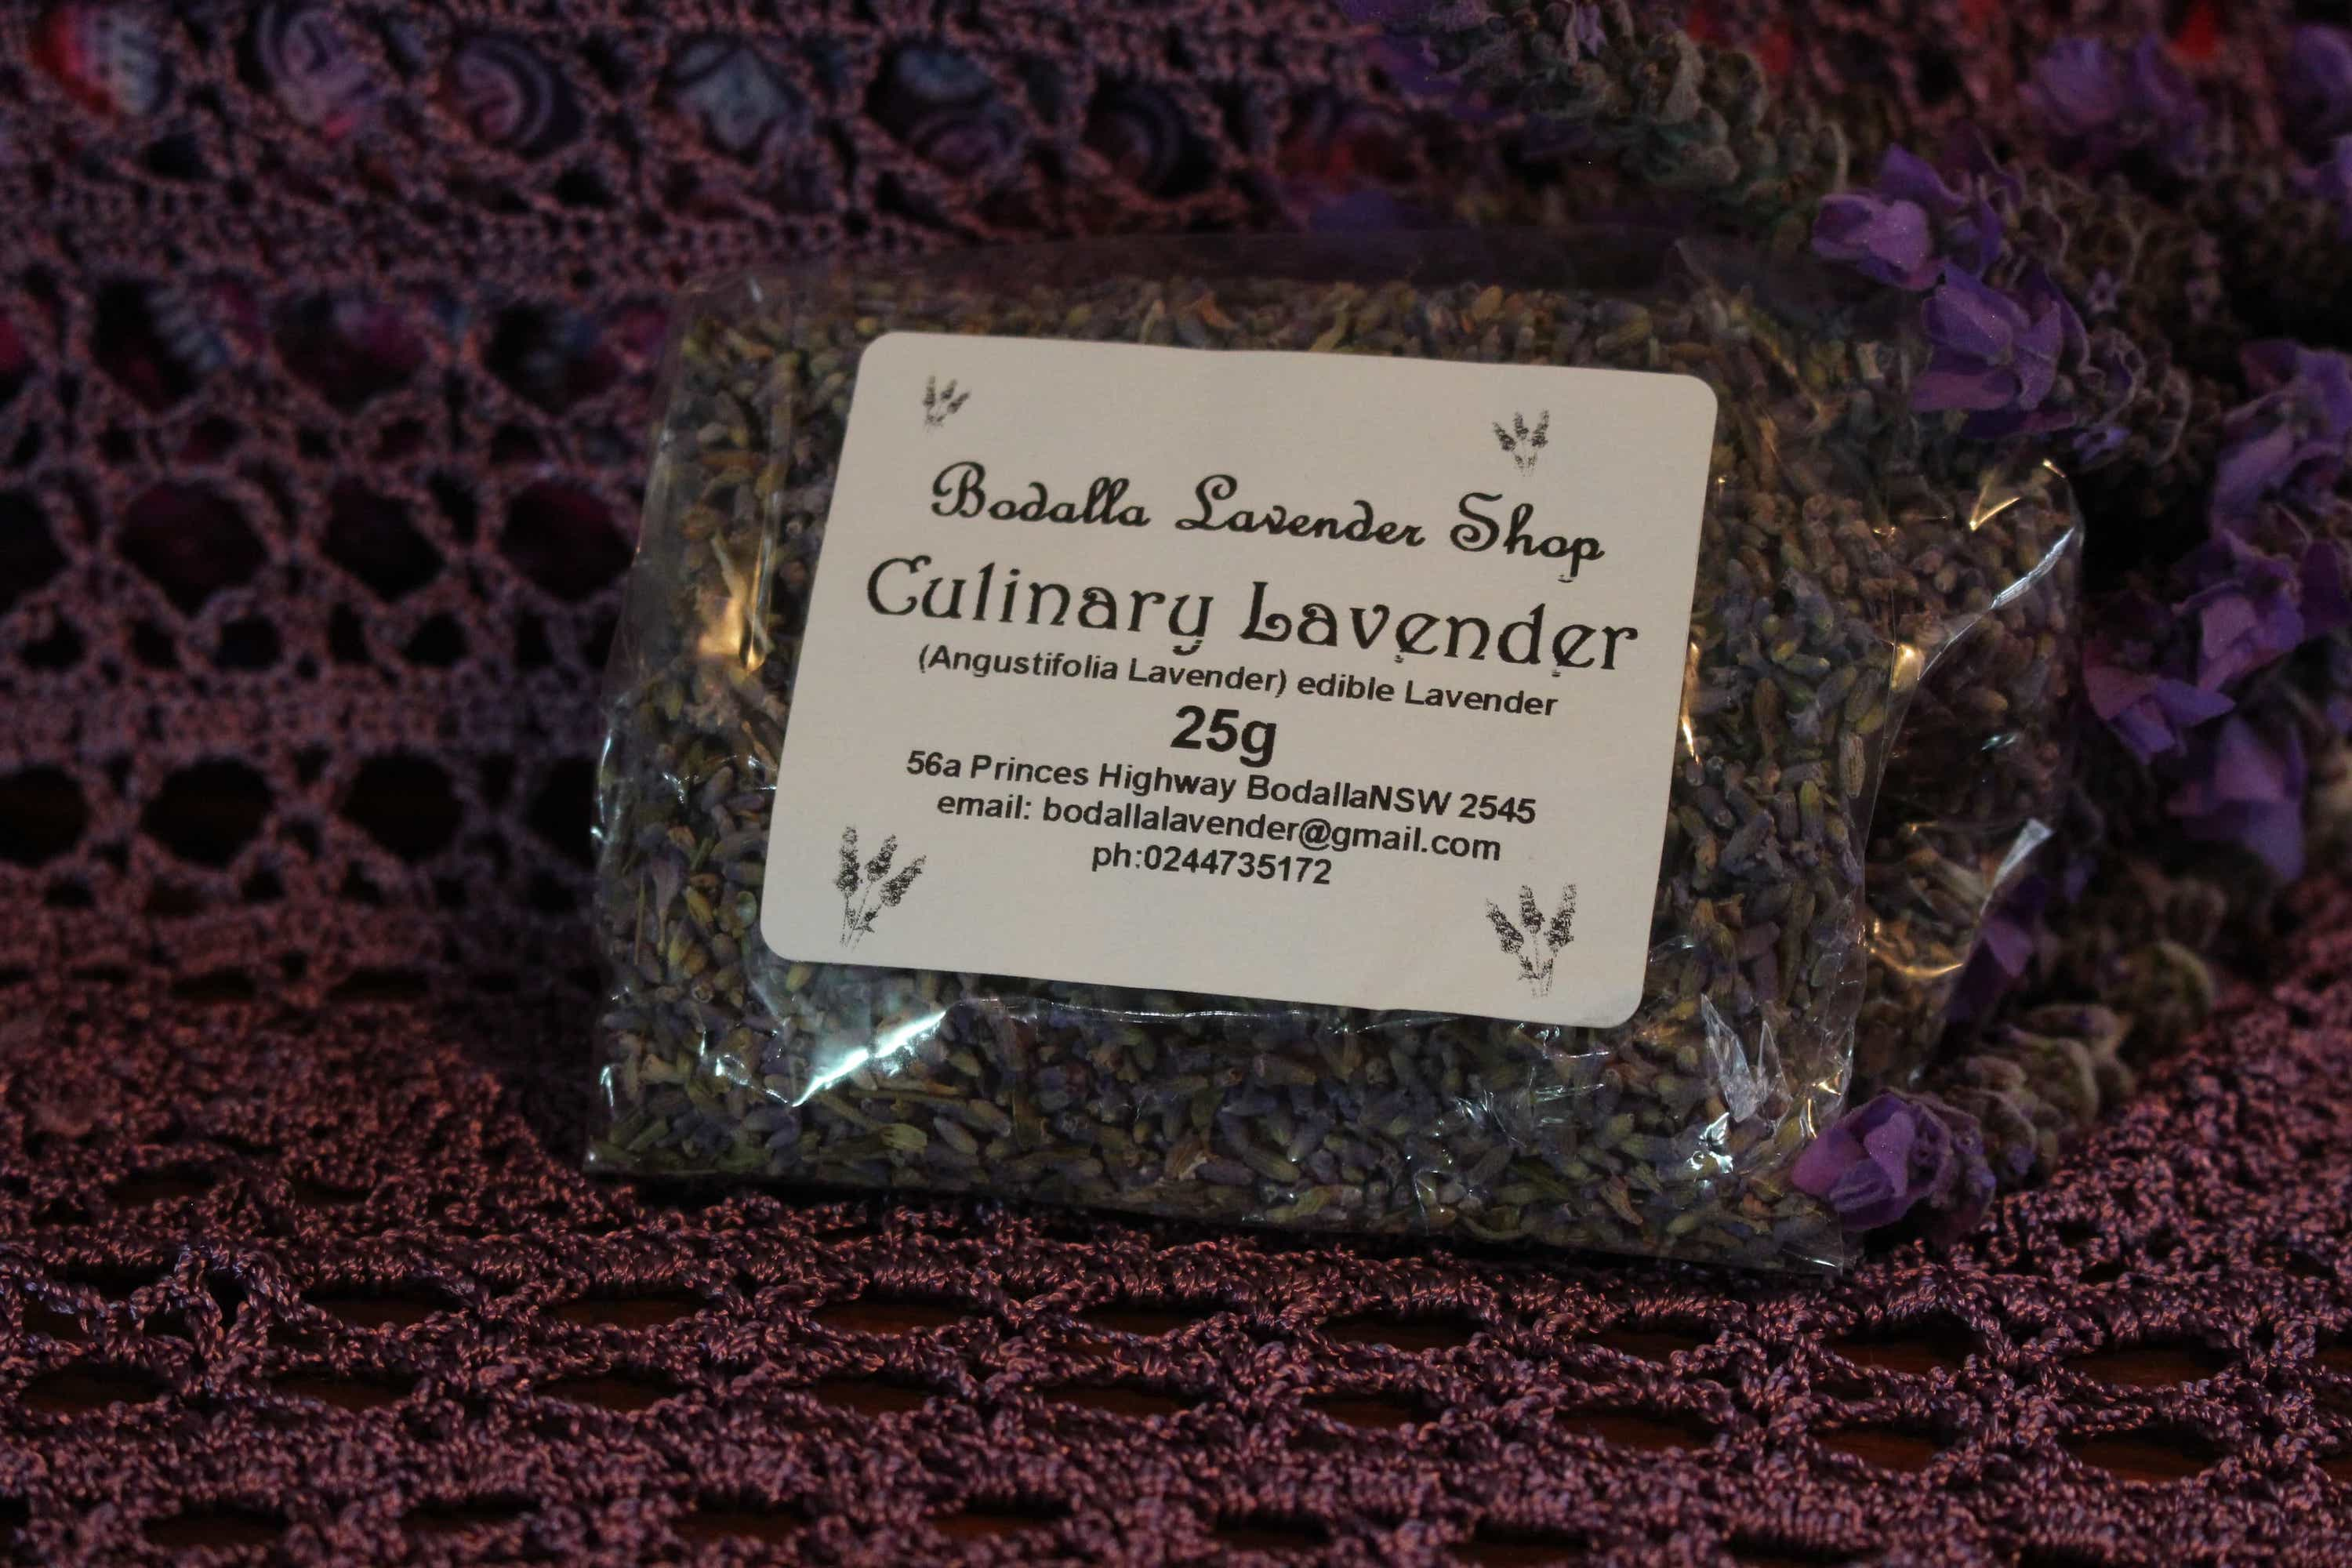 Photograph of an Culinary Lavender 25g product